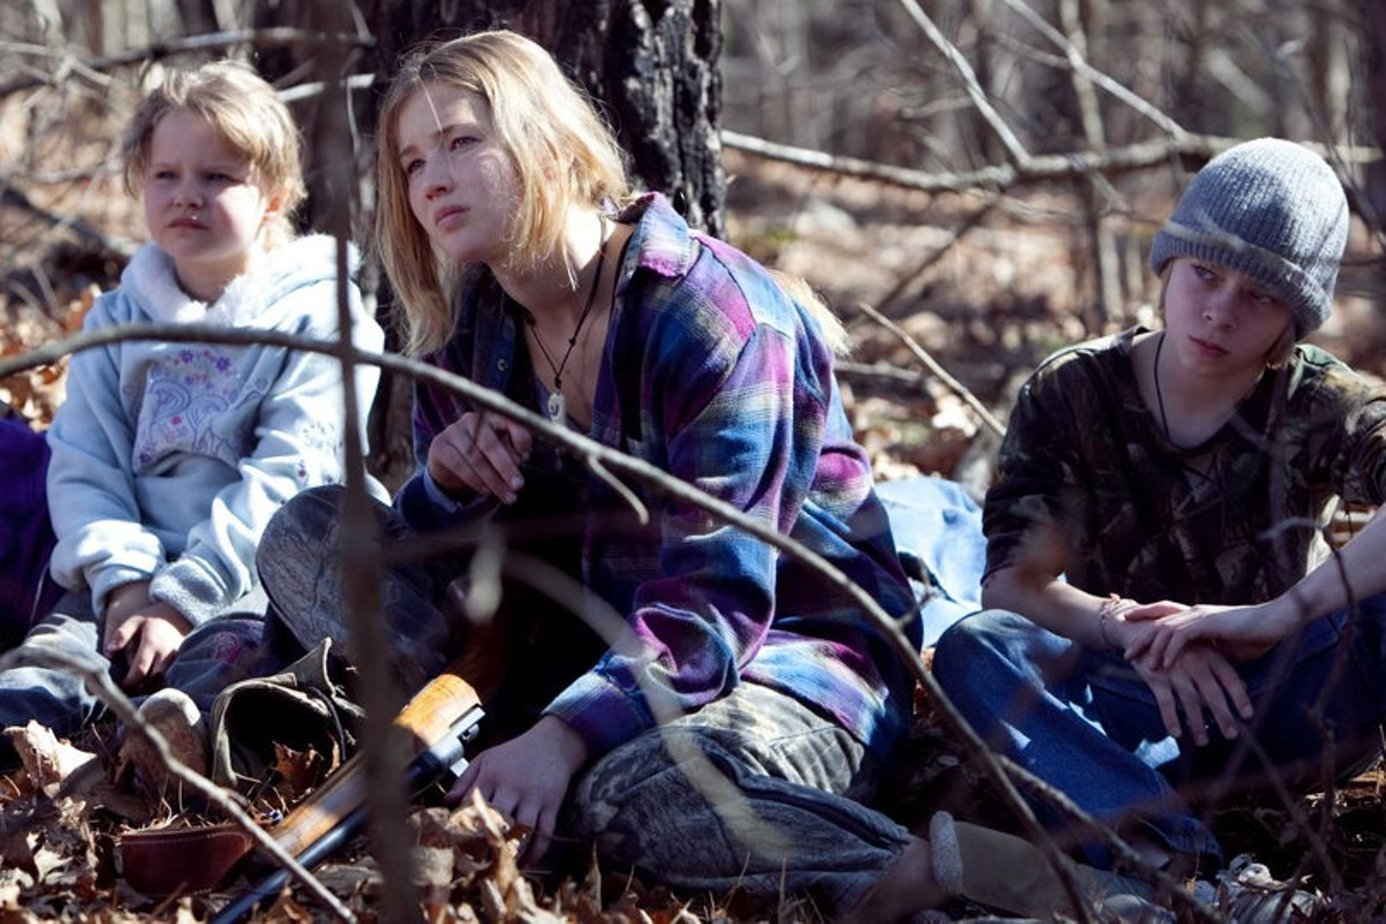 winters bone film Watch winter's bone full movie freean un-flinching ozark mountain girl will hack via some risky social land as she tracks down her drug dealer, father while preserving her loved ones in one piece.